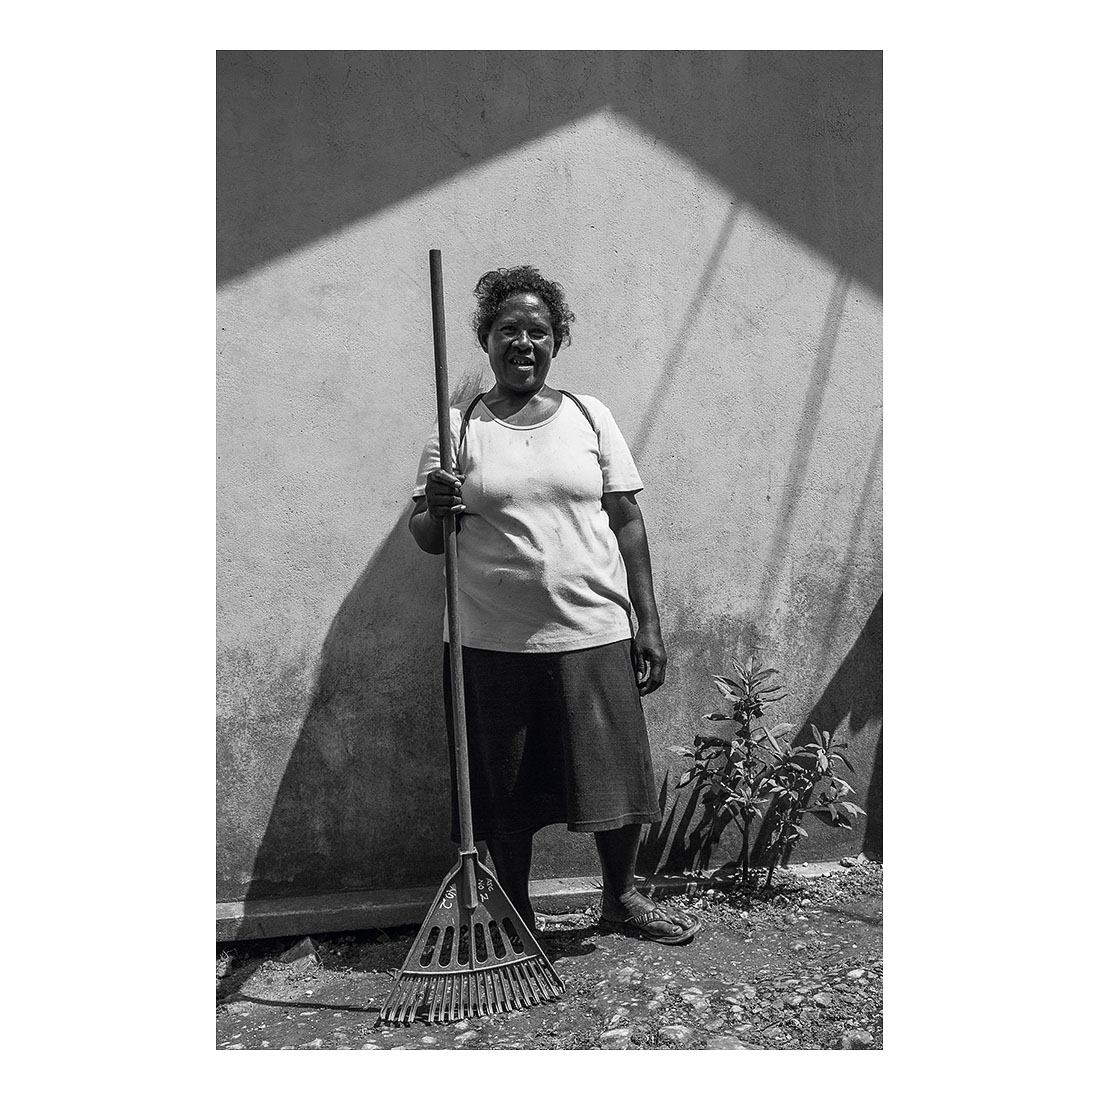 #36 Auki, Malaita, Solomon Islands  (2016).  Archival pigment print on Ilford paper. Exhibition print 36cm x 24cm. Different sizes available.